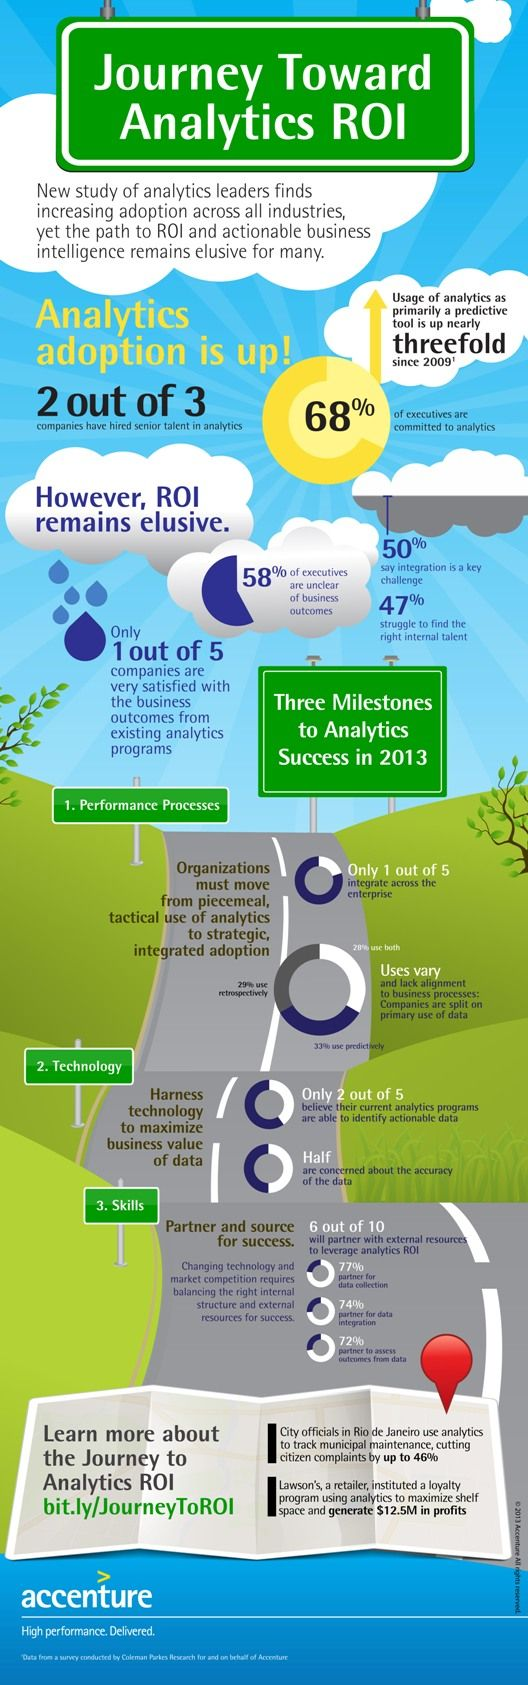 Adoption of Analytics in Business Increasing but ROI Remains Elusive [Infographic]